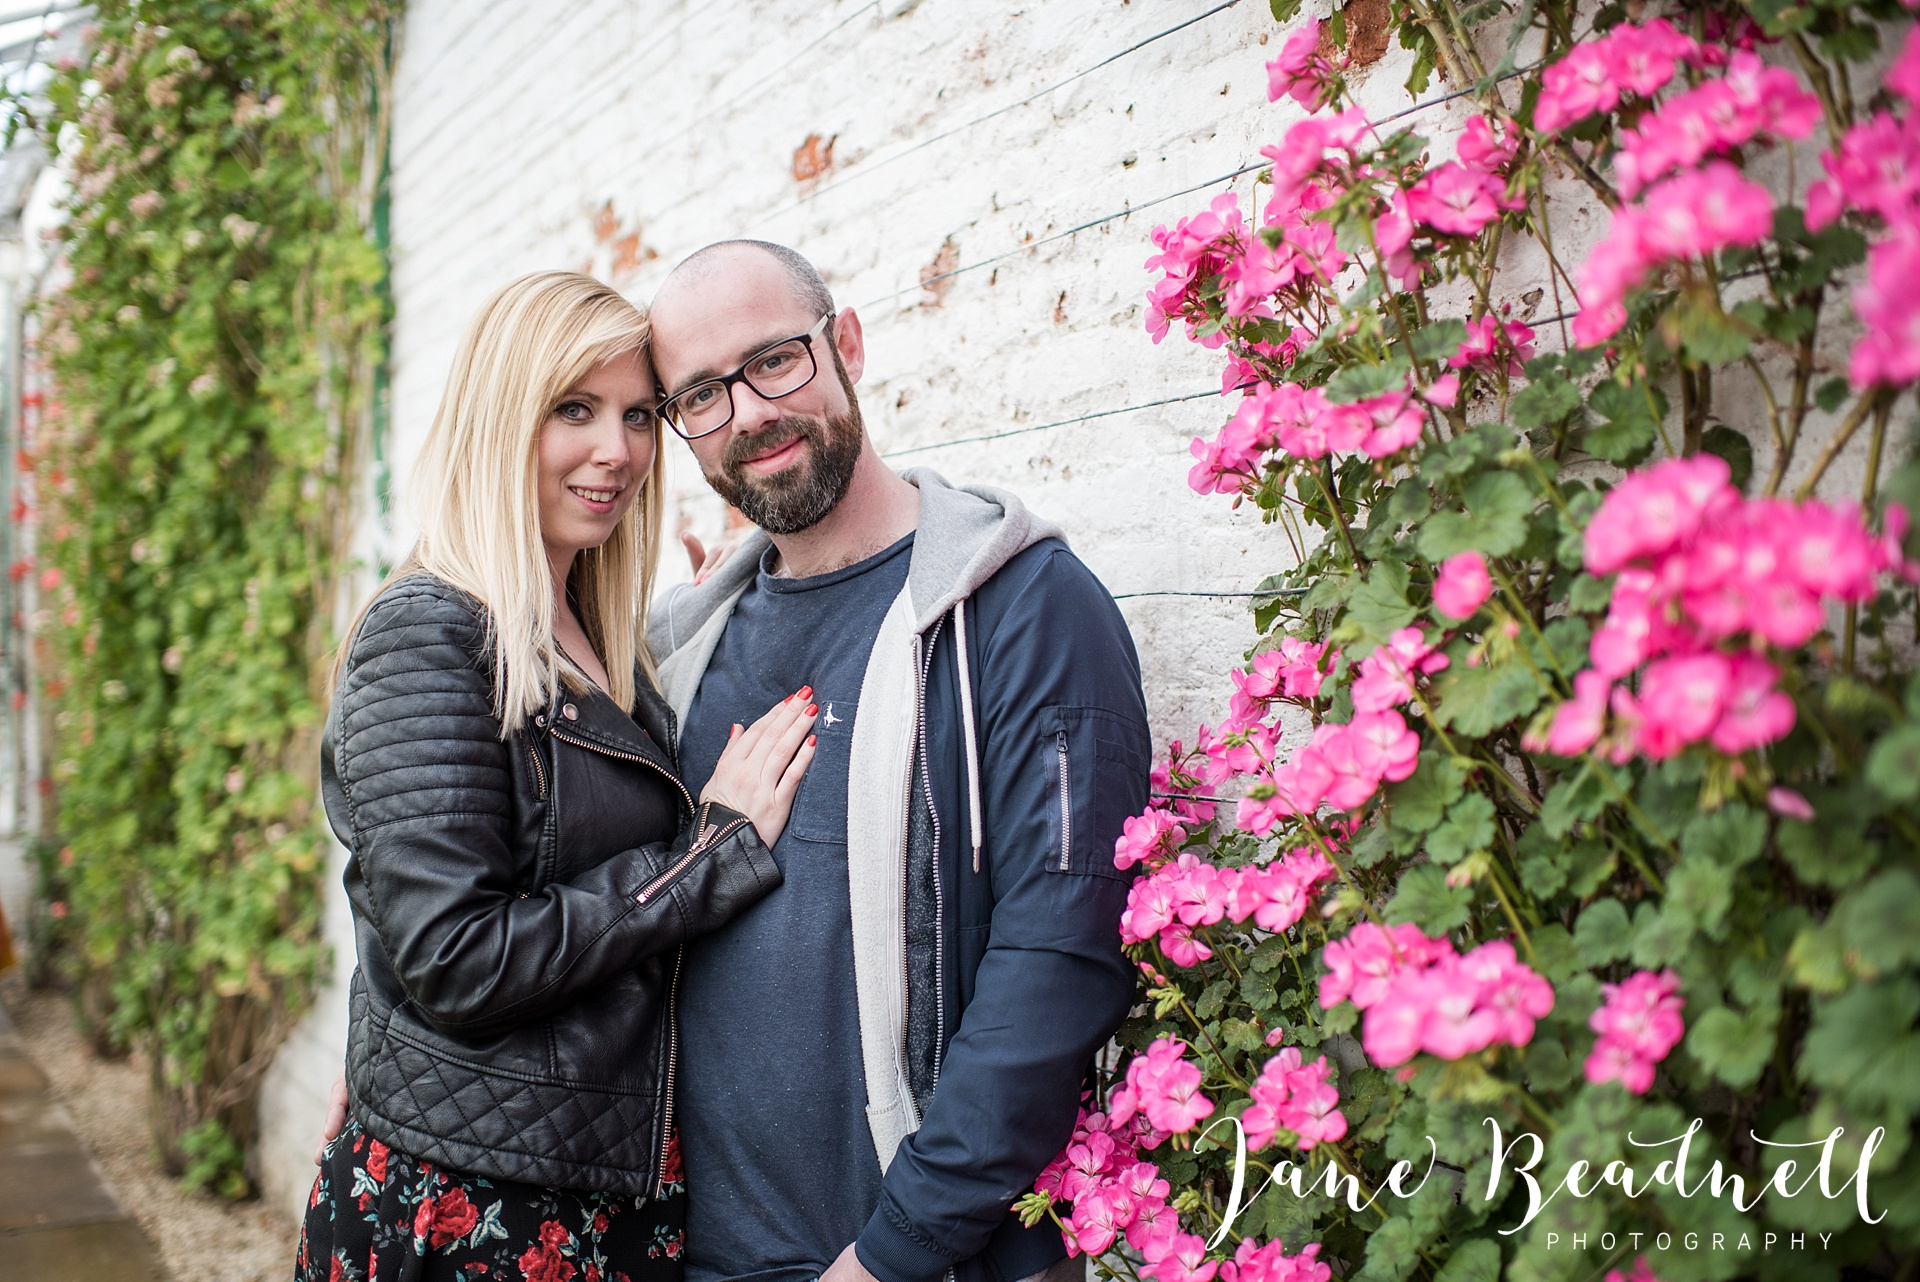 Temple Newsam engagement photography by Jane Beadnell Wedding Photography_0021